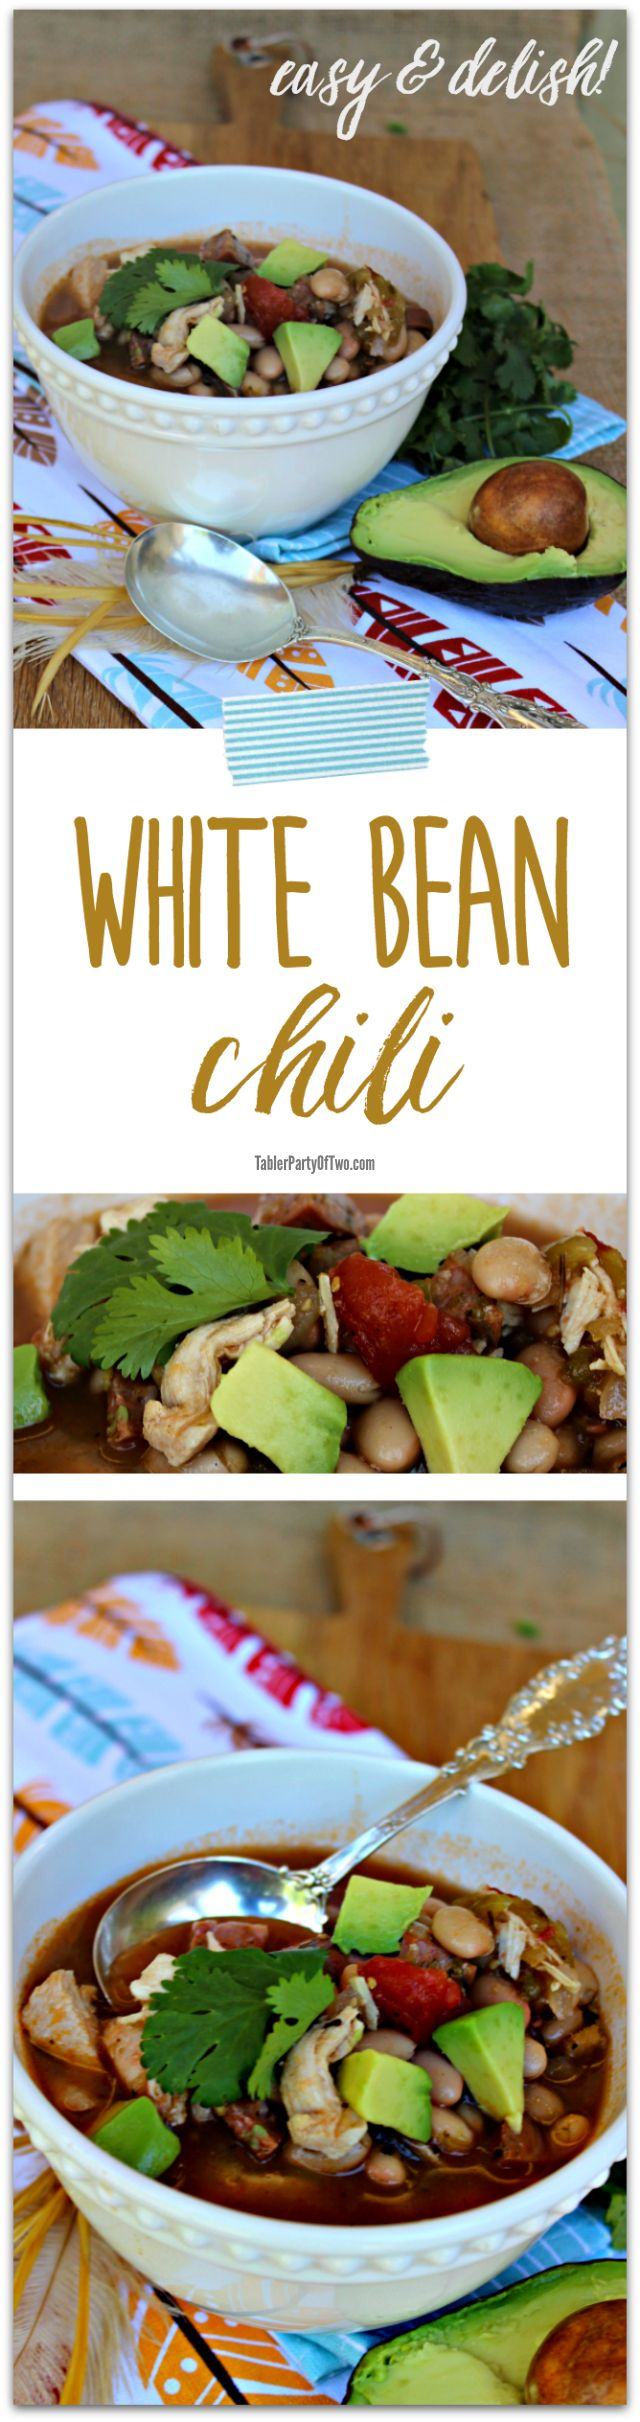 Easy and Delish White Bean Chili. Full of flavor and perfect for cold winter nights!